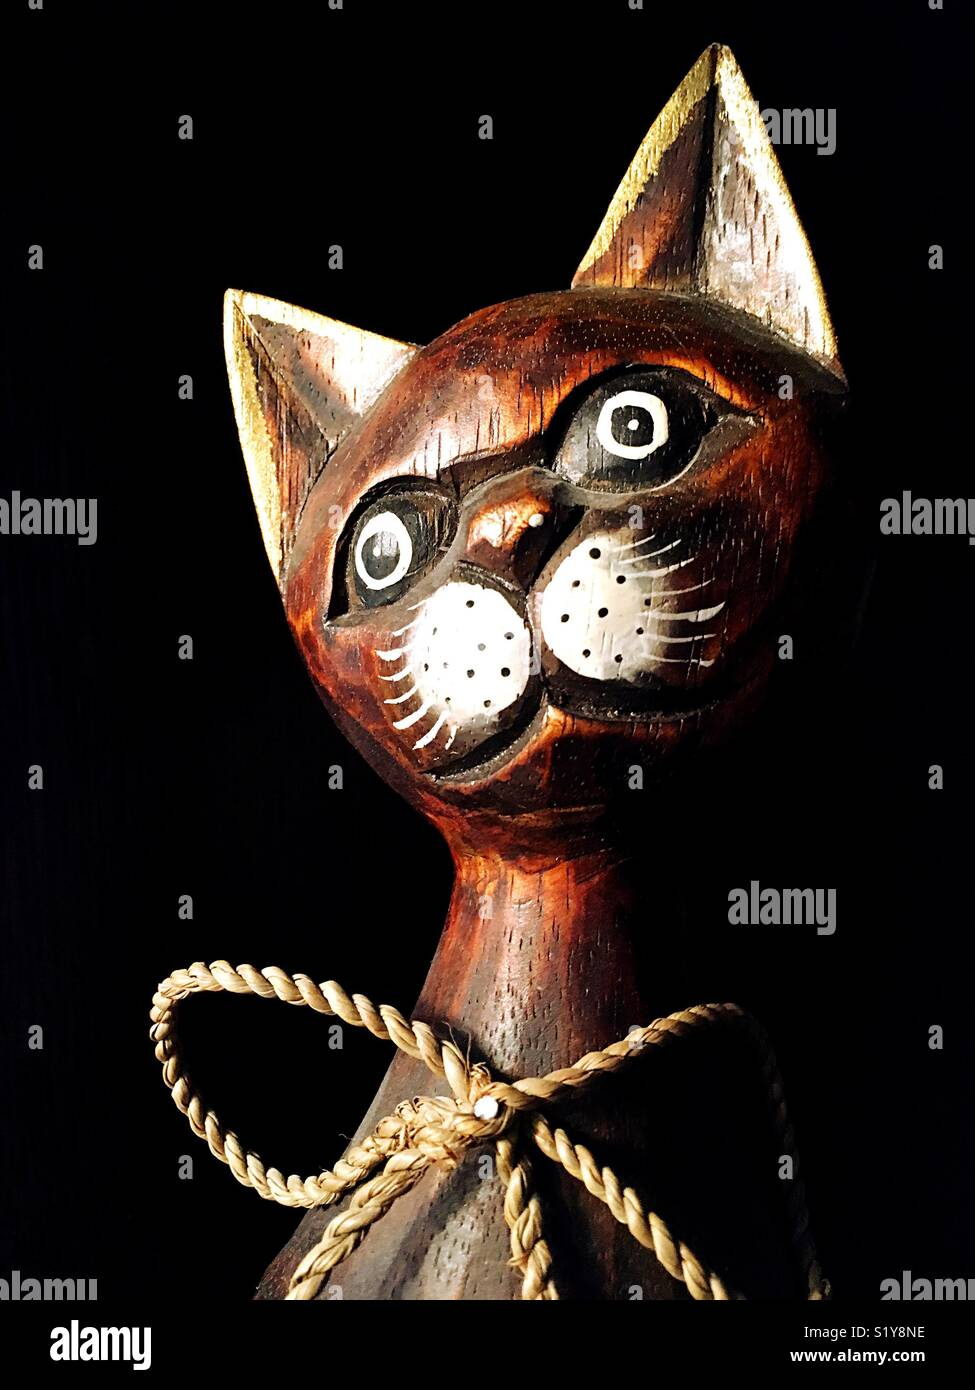 image of a cat's head Stock Photo